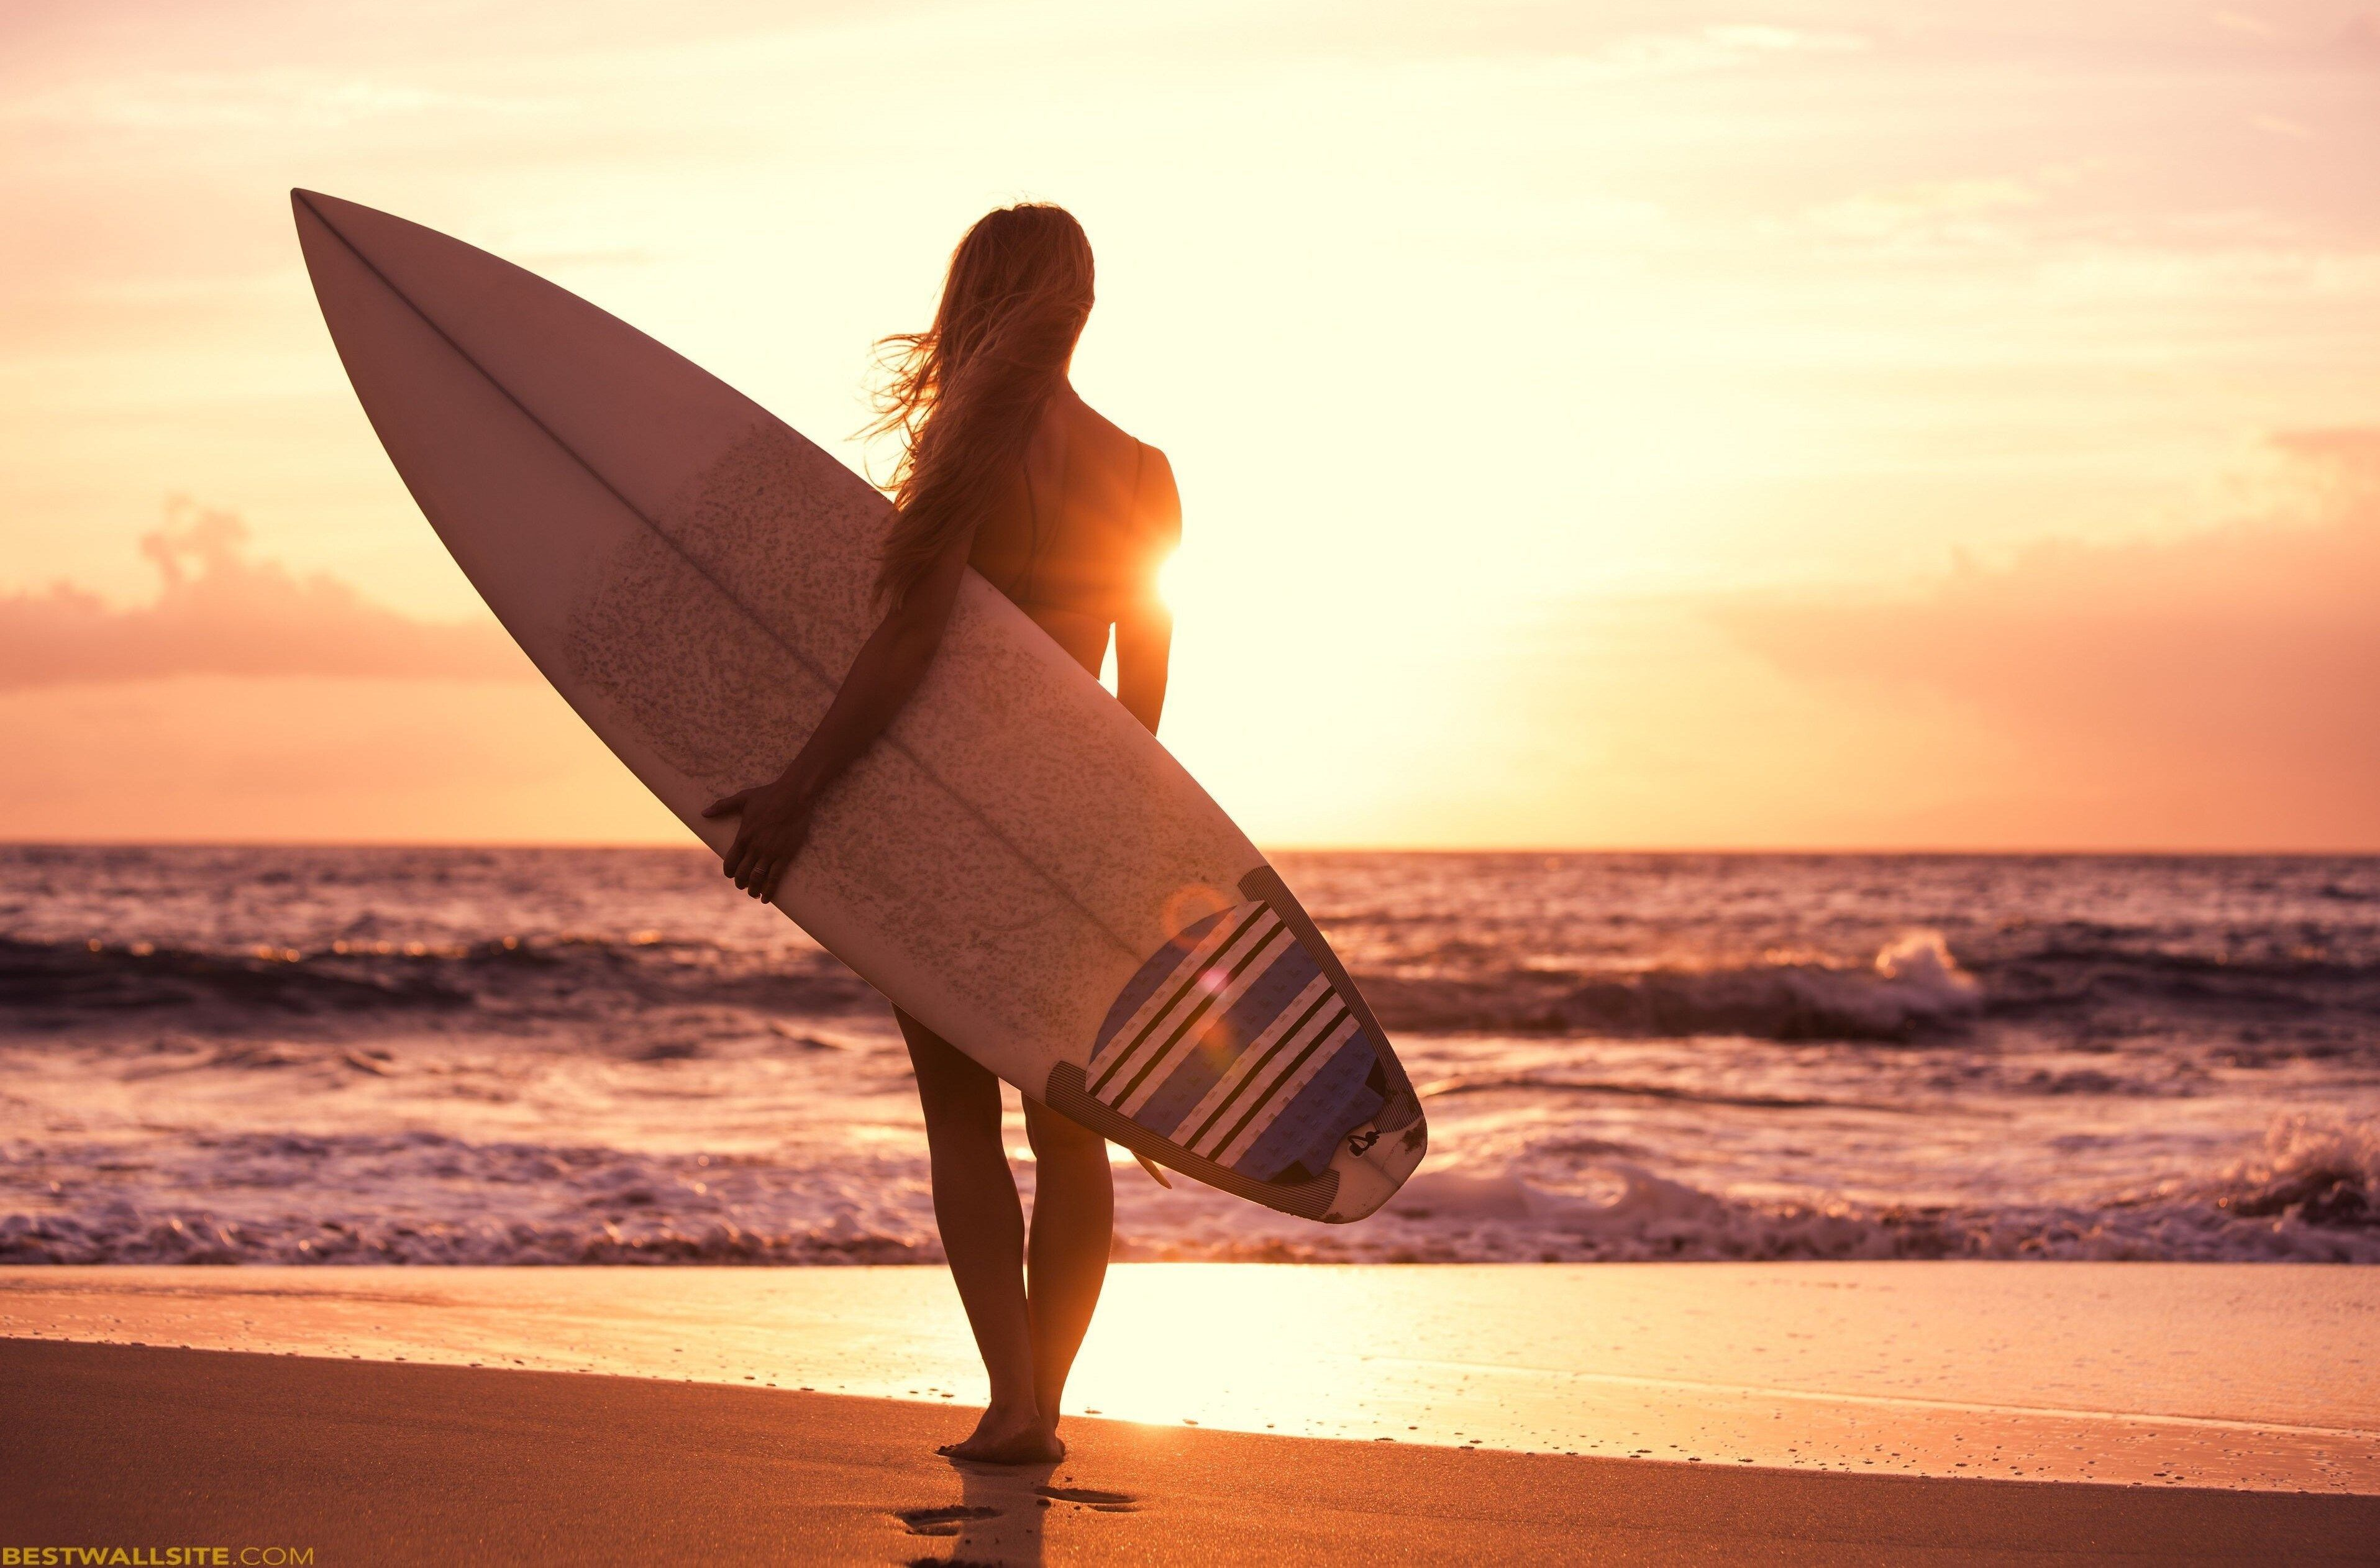 3831x2524 Surfing 4k Free Download Wallpaper Surf Girls Surfing